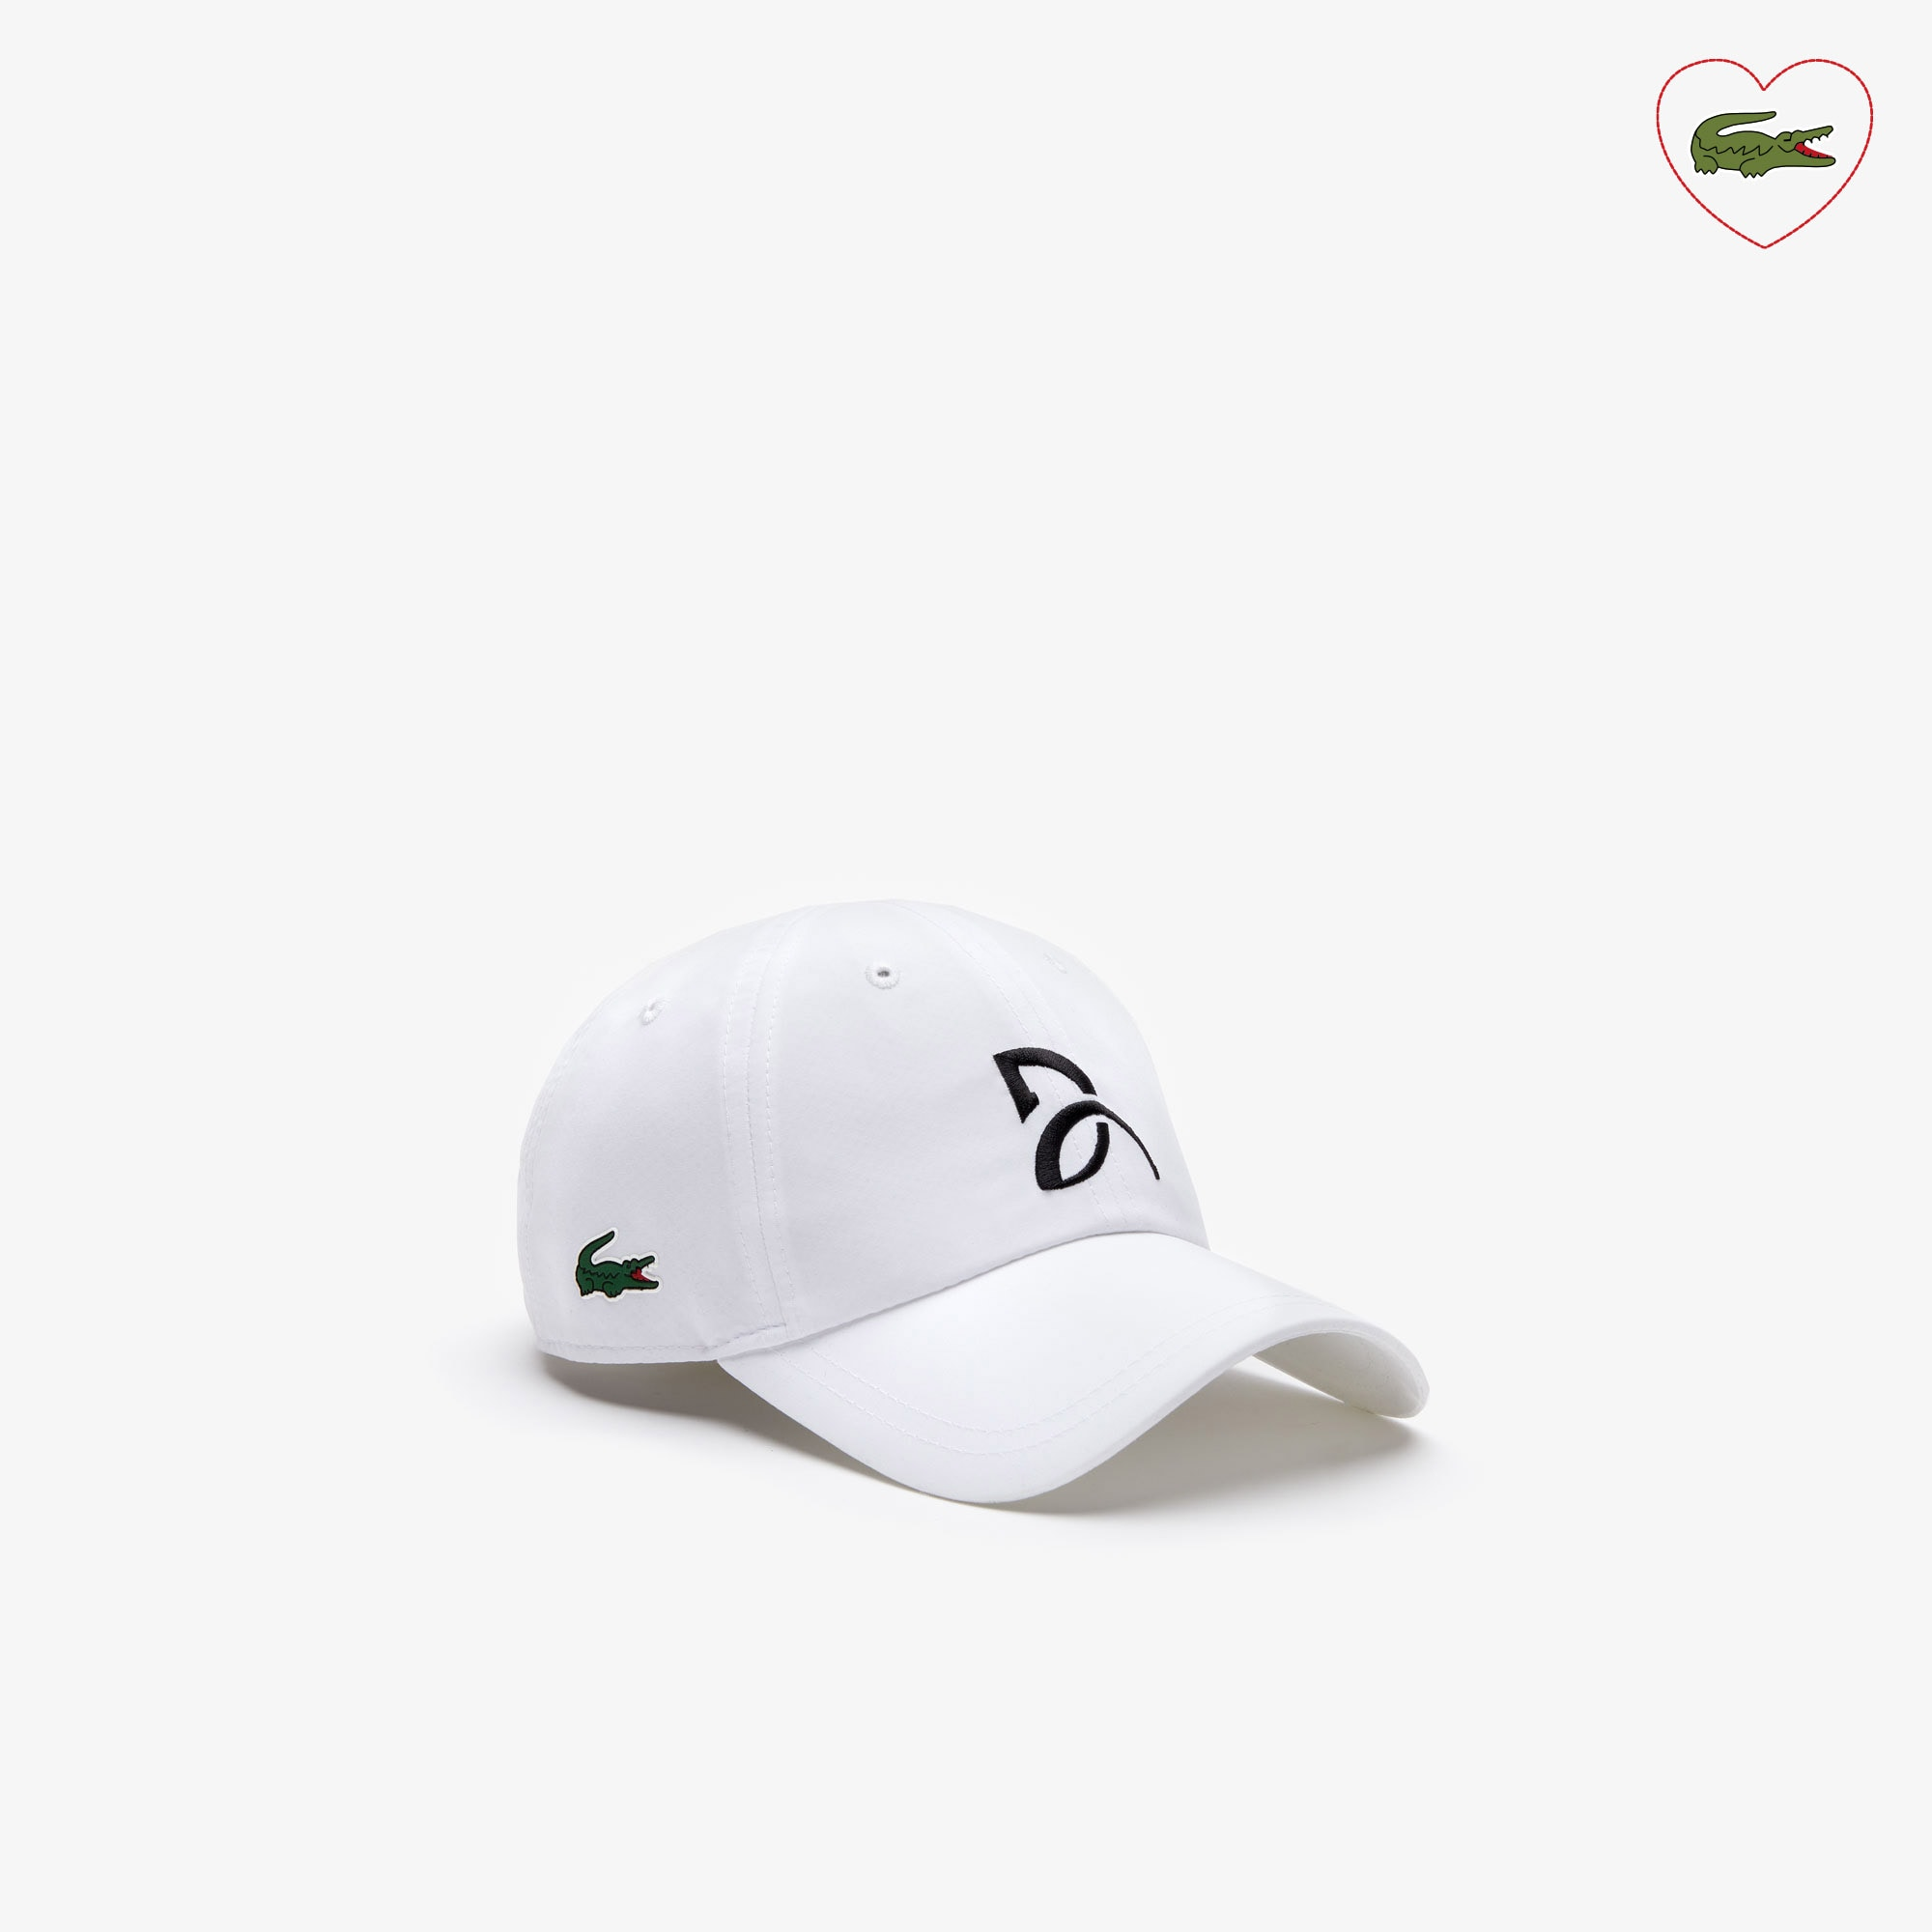 Casquette Tennis Lacoste Sport en Microfibre - Collection Novak Djokovic Support With Style